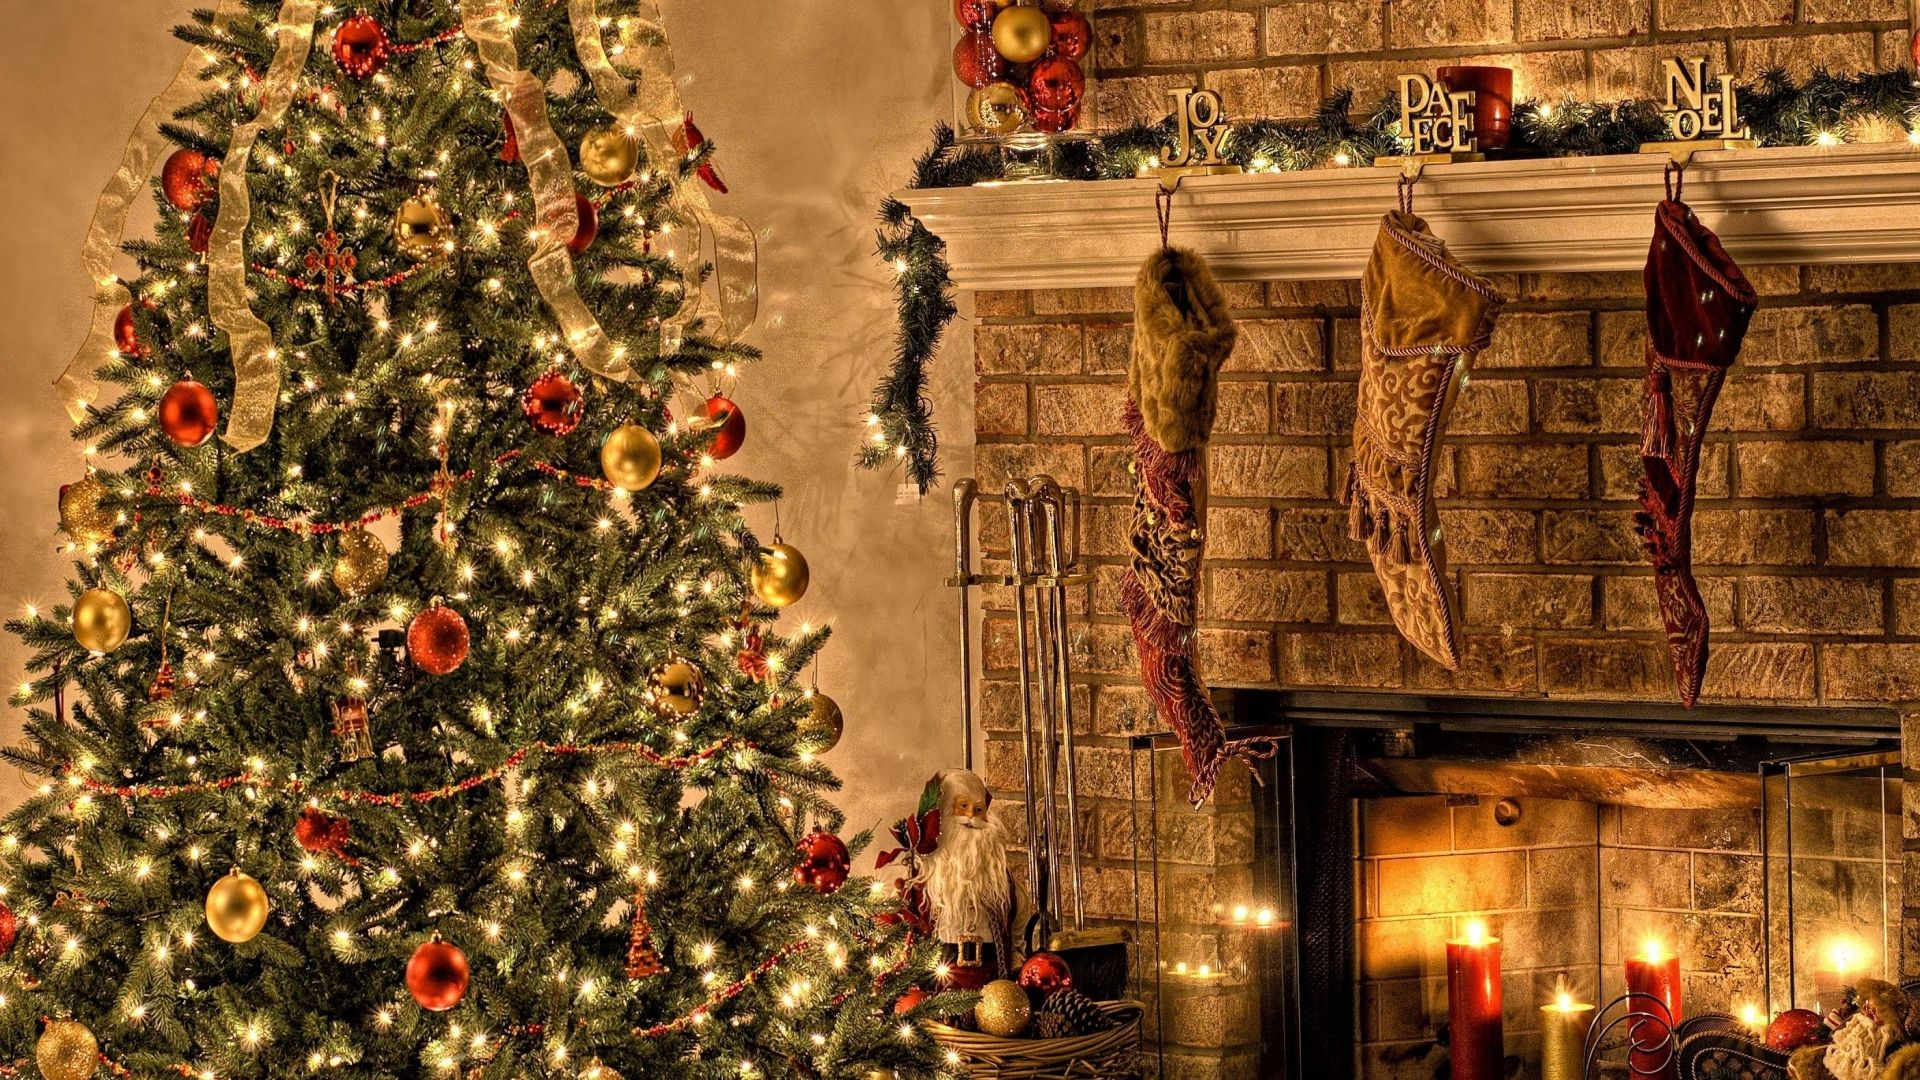 1920x1080 Wallpaper Tree Fire Christmas Holiday Candles Toys Stockin Christmas Background Photography Christmas Wallpaper Backgrounds Christmas Backdrops